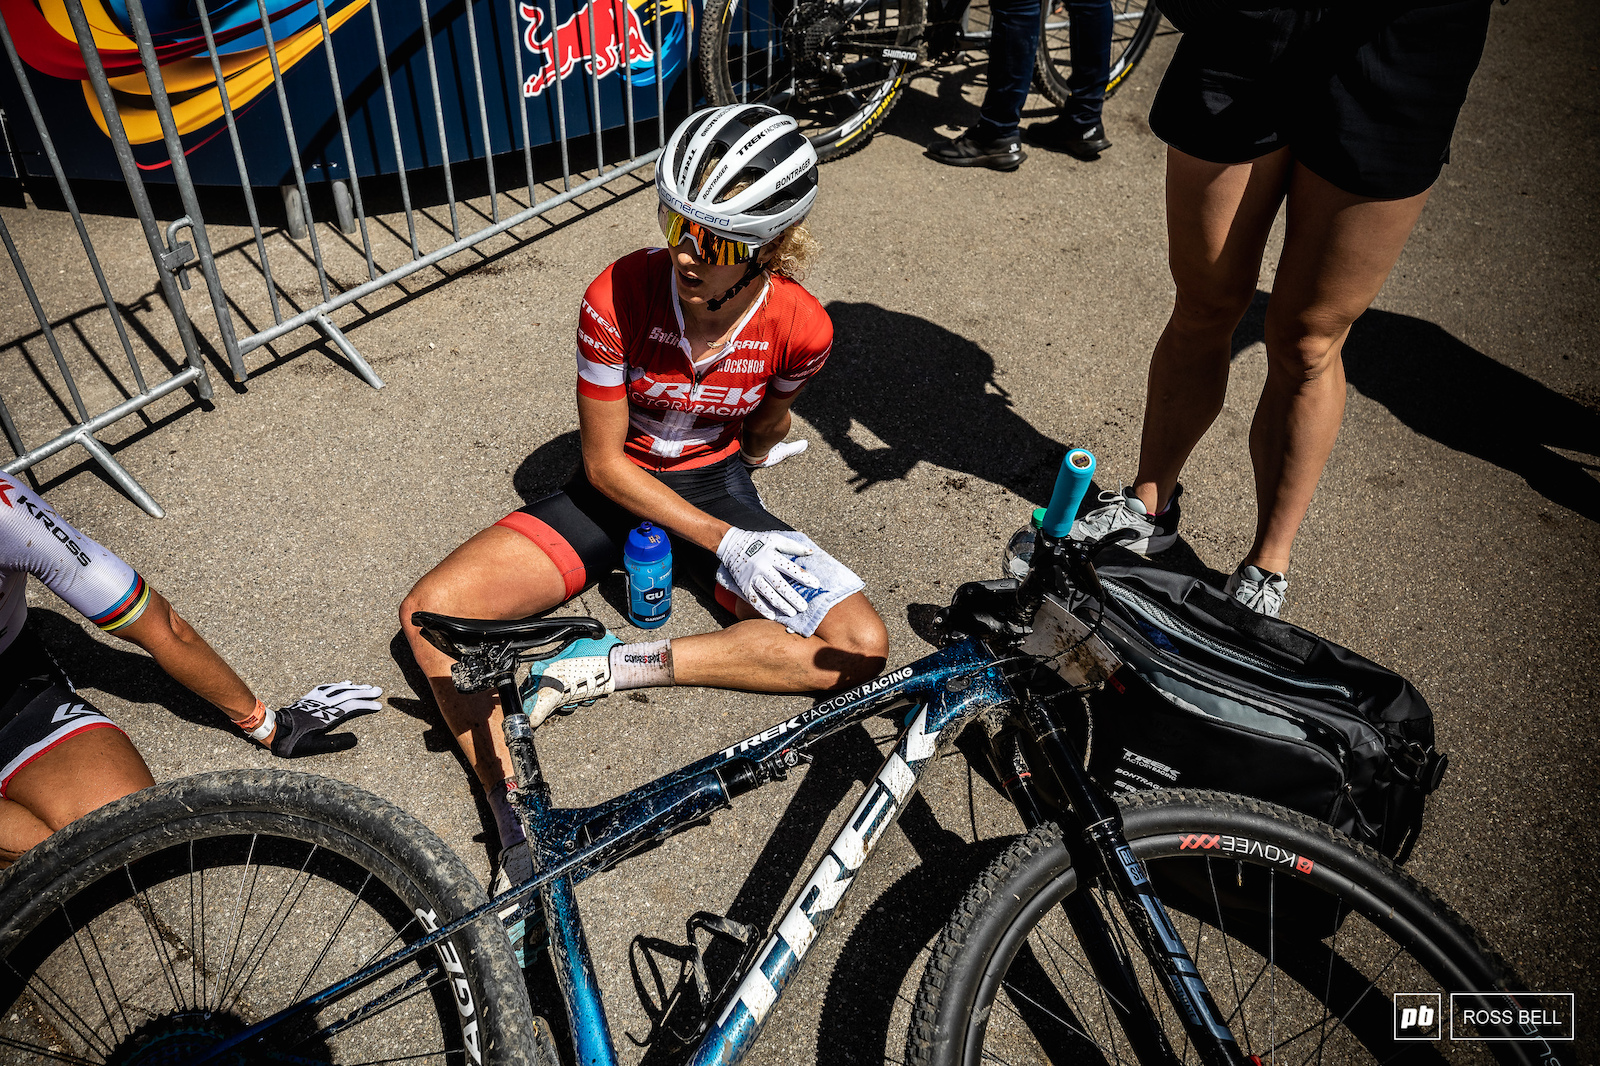 Jolanda Neff had a strong opening half to the race before starting to struggle with her breathing thanks to the pollen that was drifting around in the warm spring air.